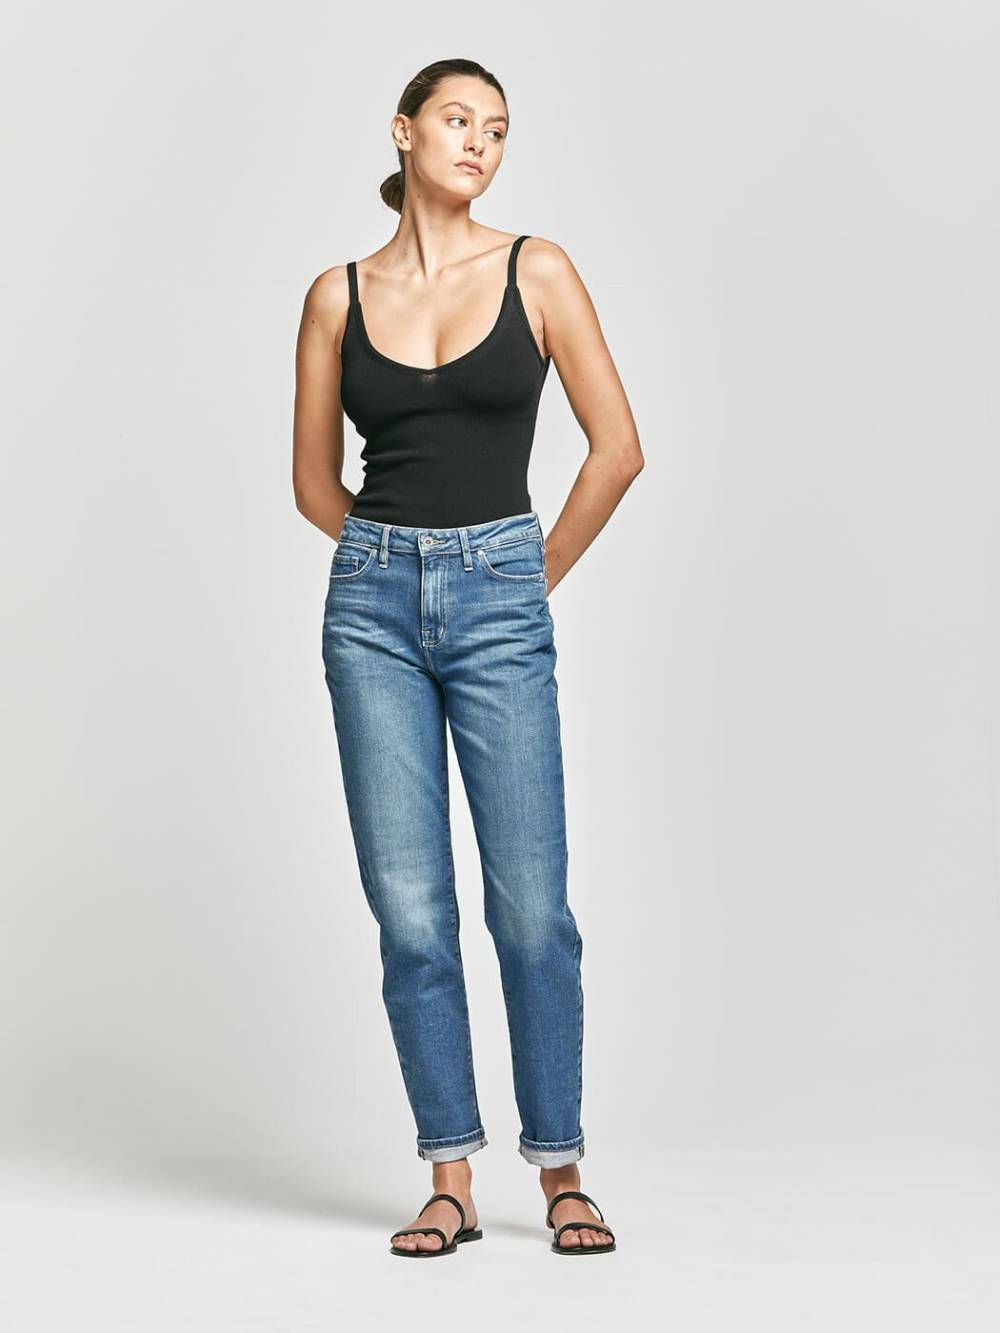 outland denim ethical fashion australia